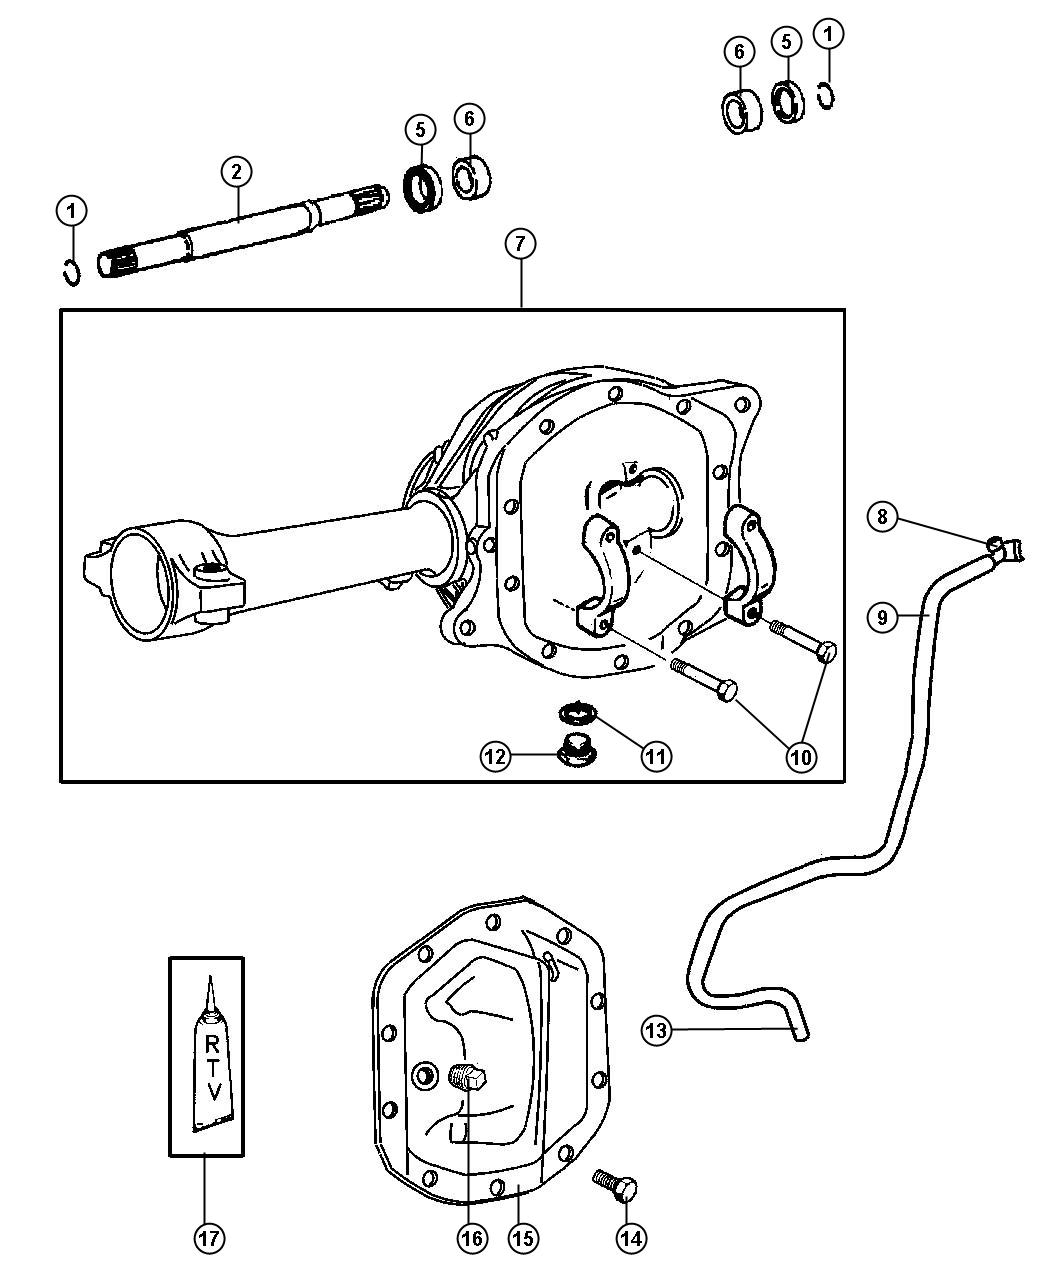 hight resolution of jeep grand cherokee rear suspension jeep tj front suspension diagram jeep front end suspension diagram jeep